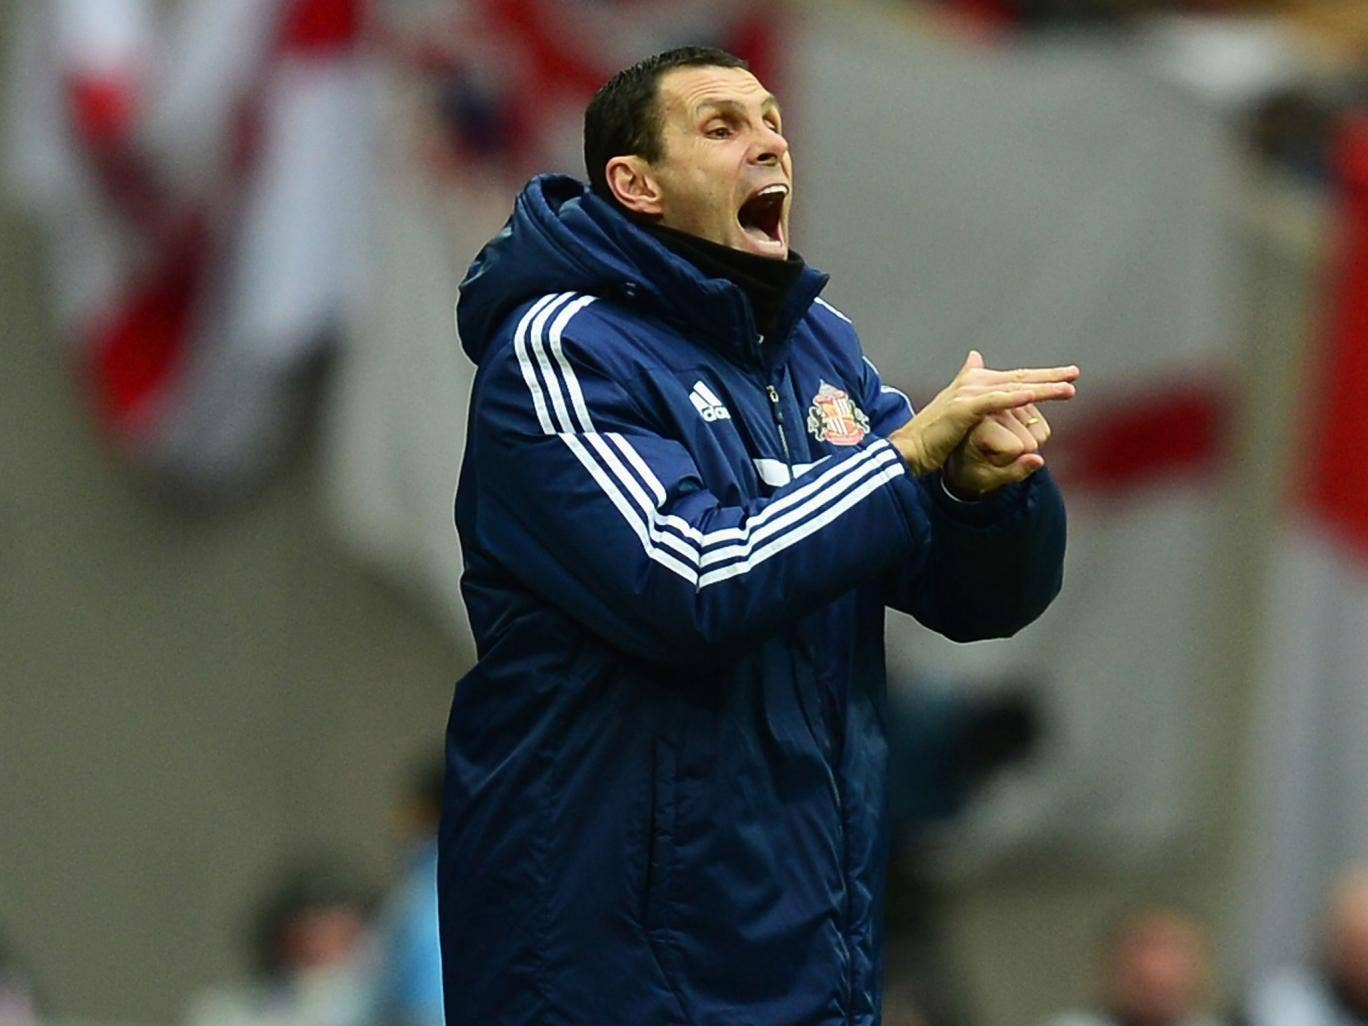 Gus Poyet makes a gesture from the touchline at Wembley